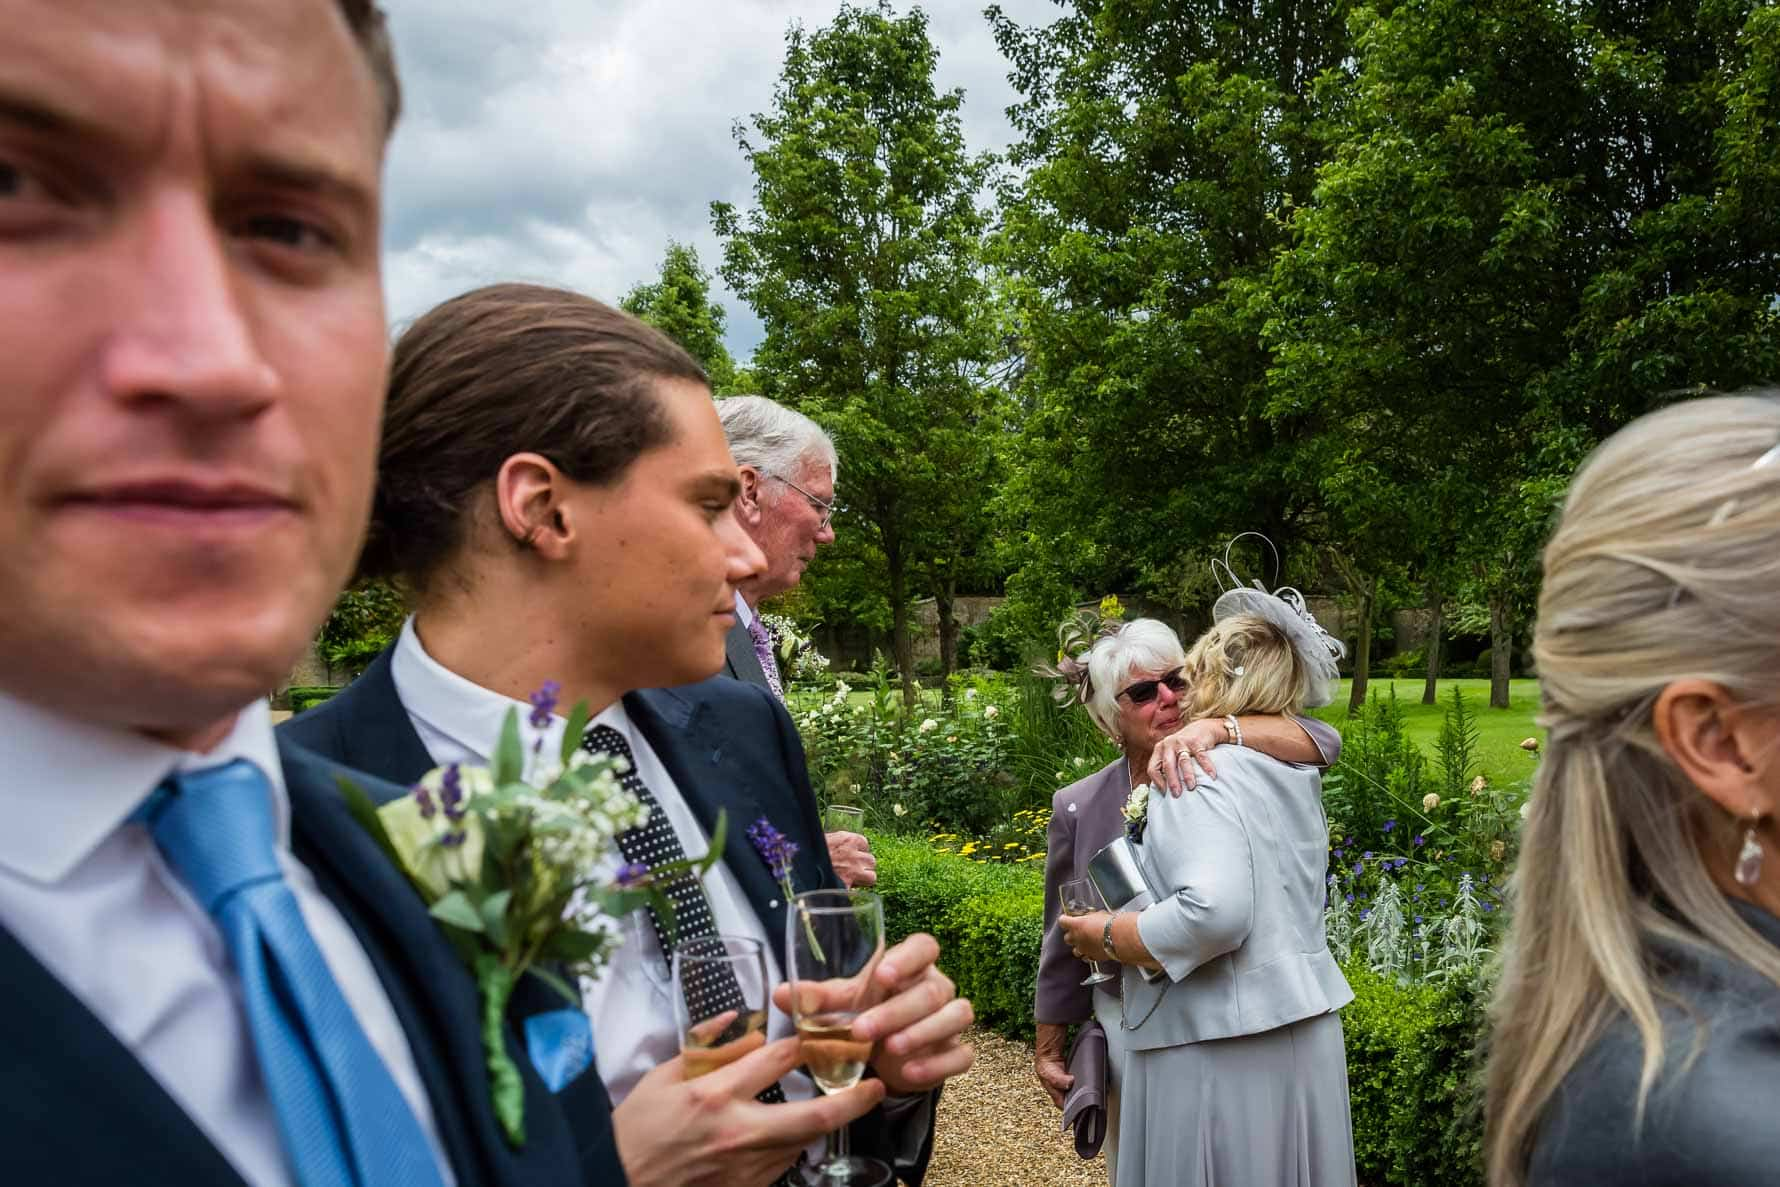 The mums sharing a special moment at Hanbury Manor by Hertfordshire wedding photographer Graham Warrellow